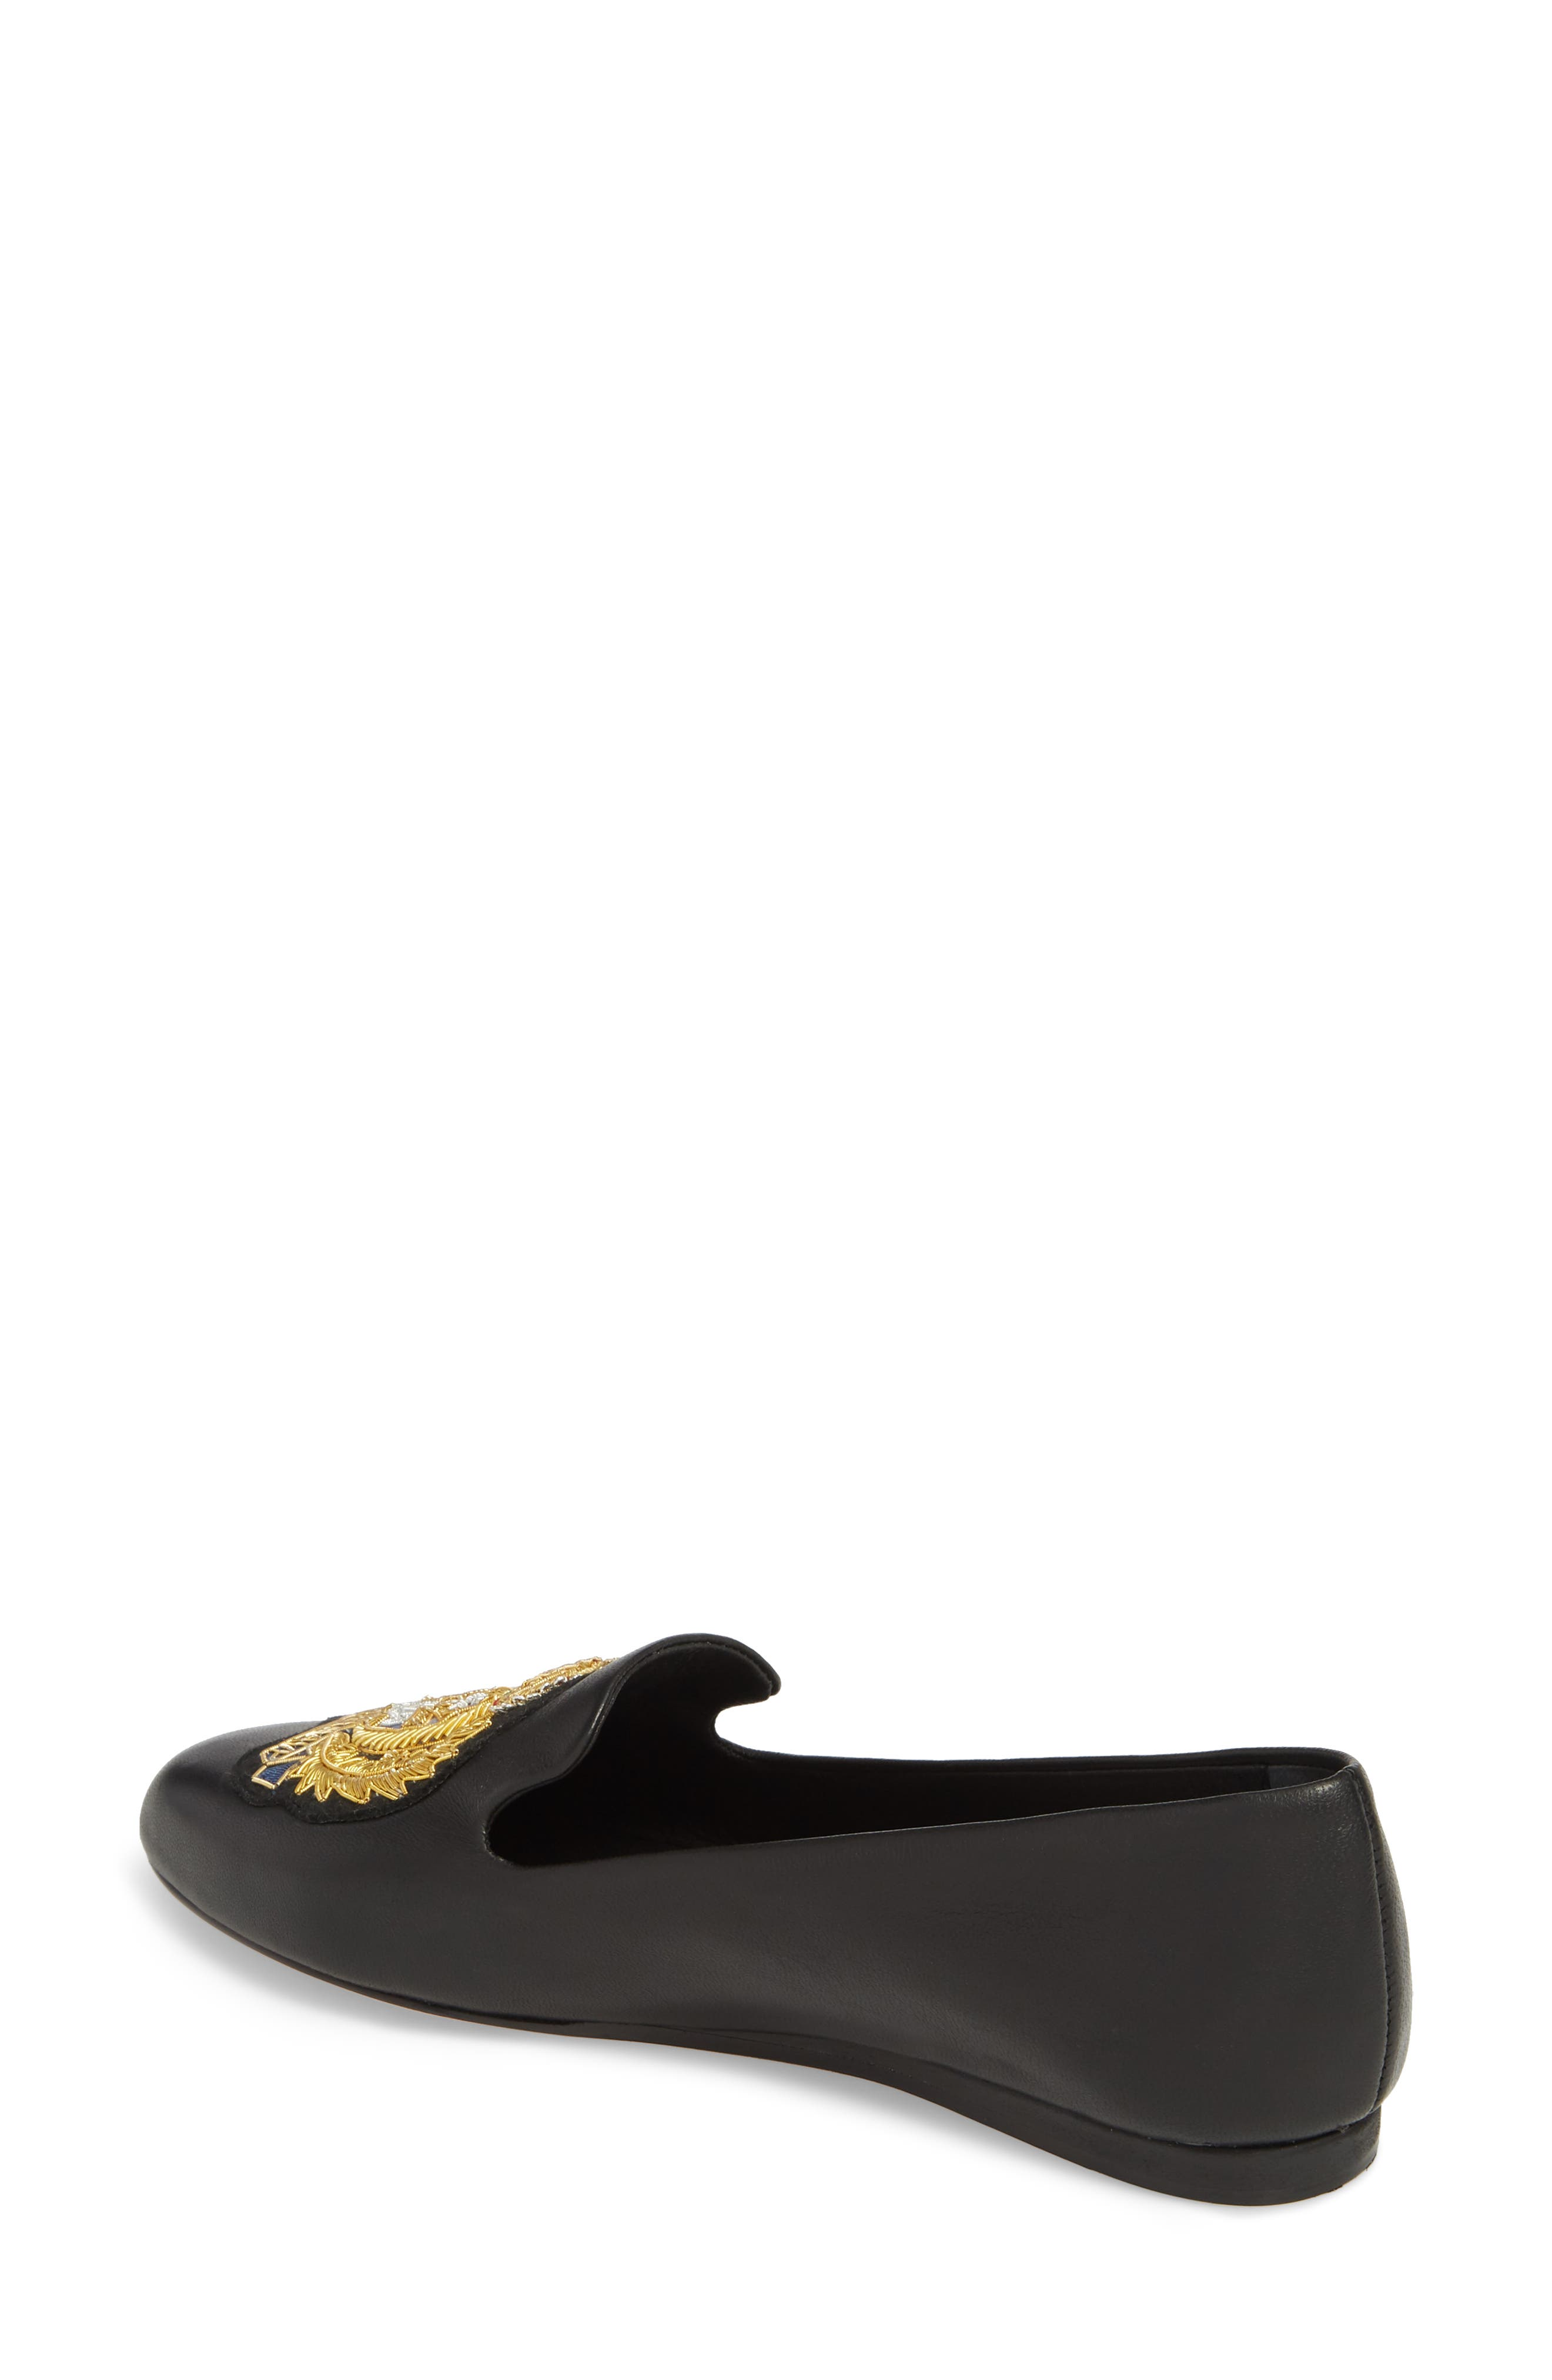 Griffin Pointy Toe Loafer,                             Alternate thumbnail 2, color,                             BLACK LEATHER